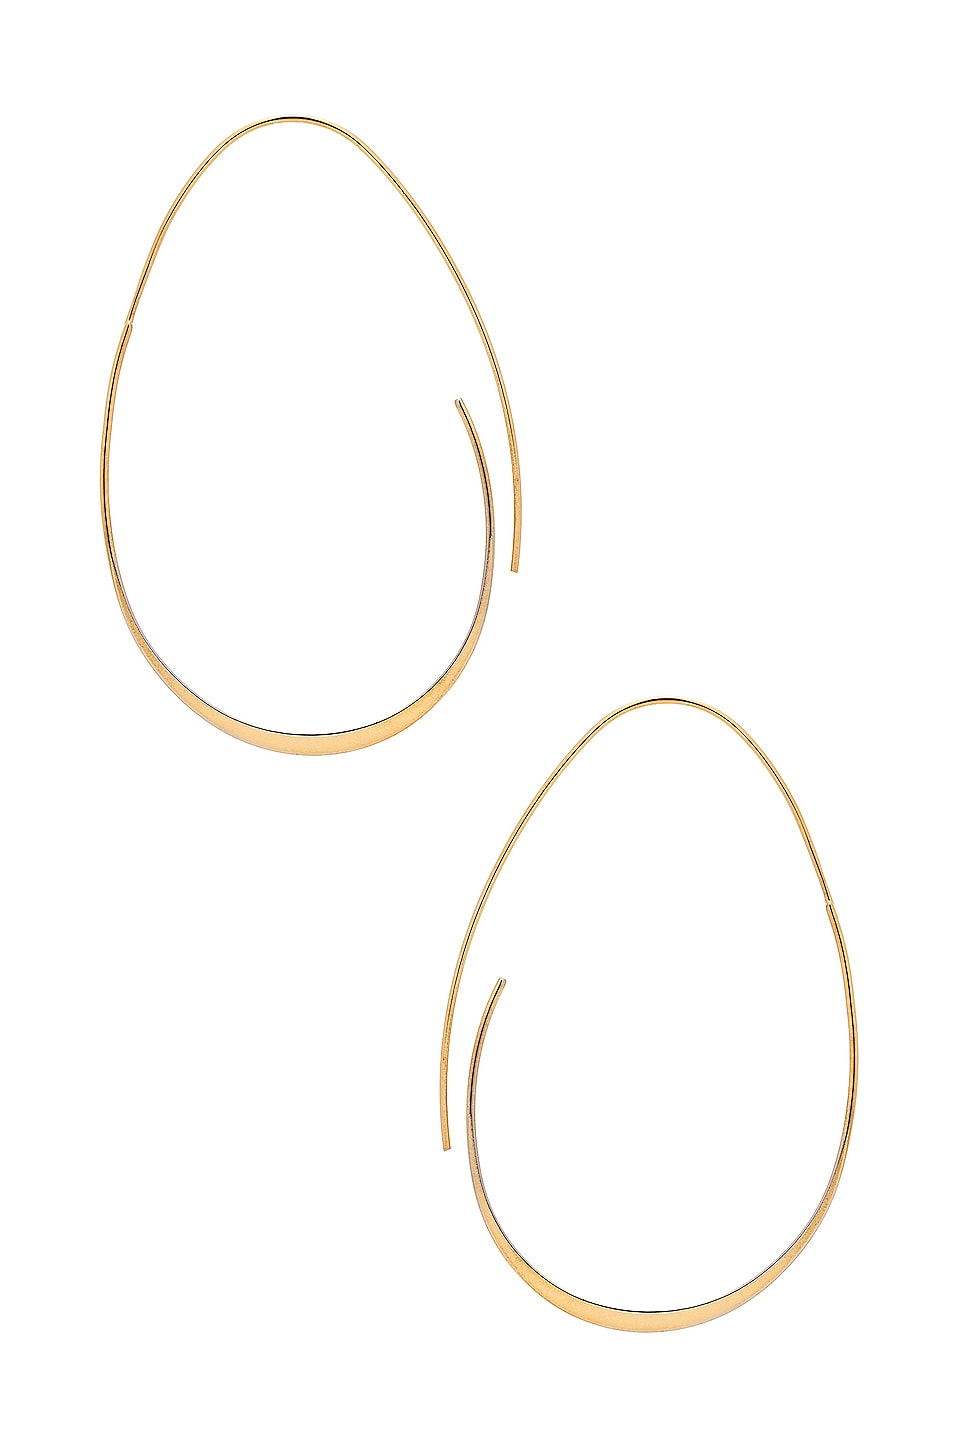 EIGHT BY GJENMI JEWELRY Egg Hoops in Metallic Gold